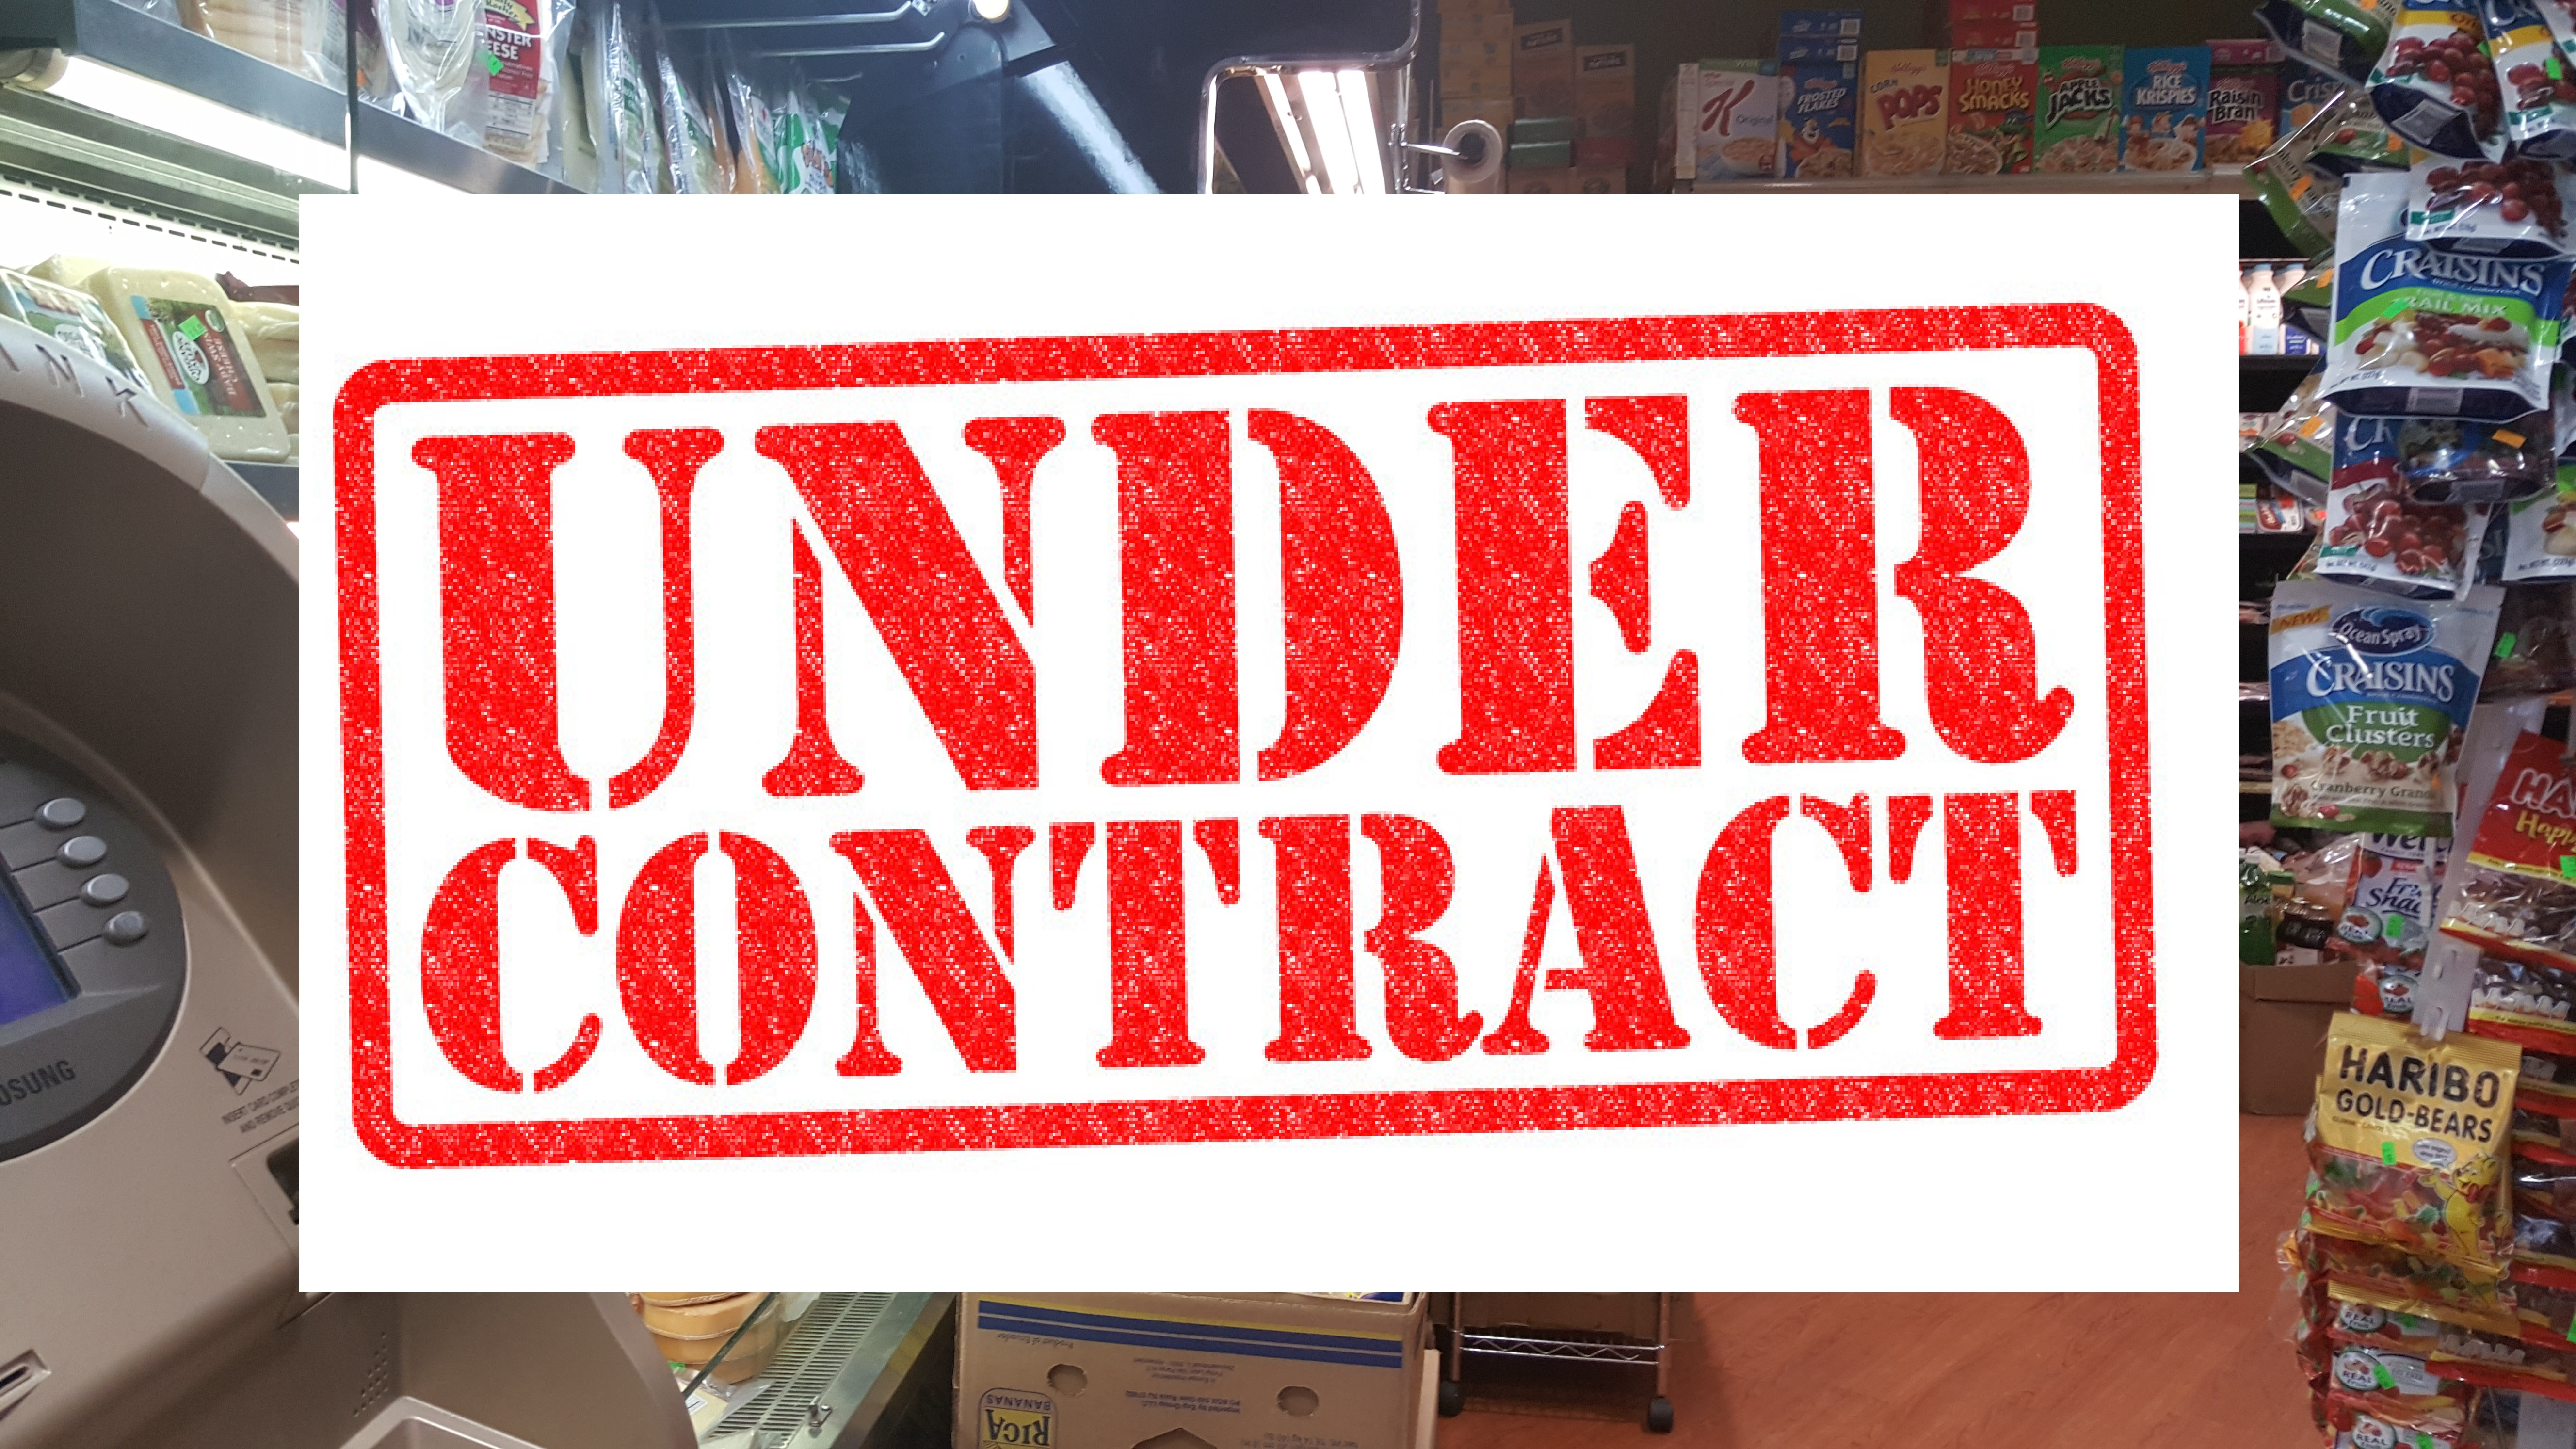 Deli Grocery(Under Contract) – Brooklyn